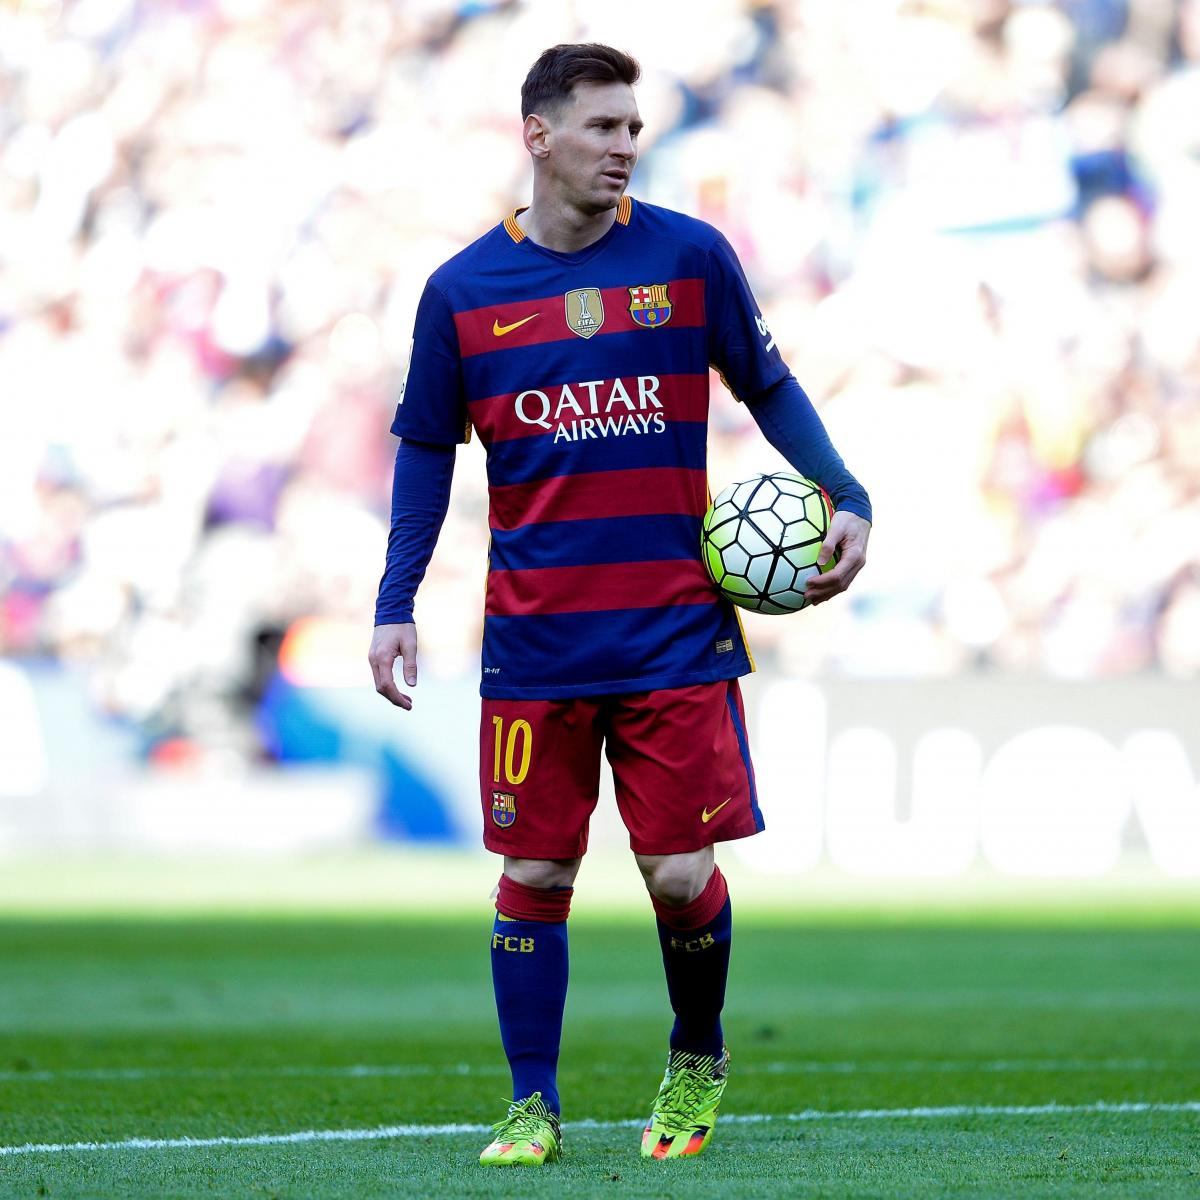 La liga results 2016 full table title odds and scores - La liga latest results and table ...